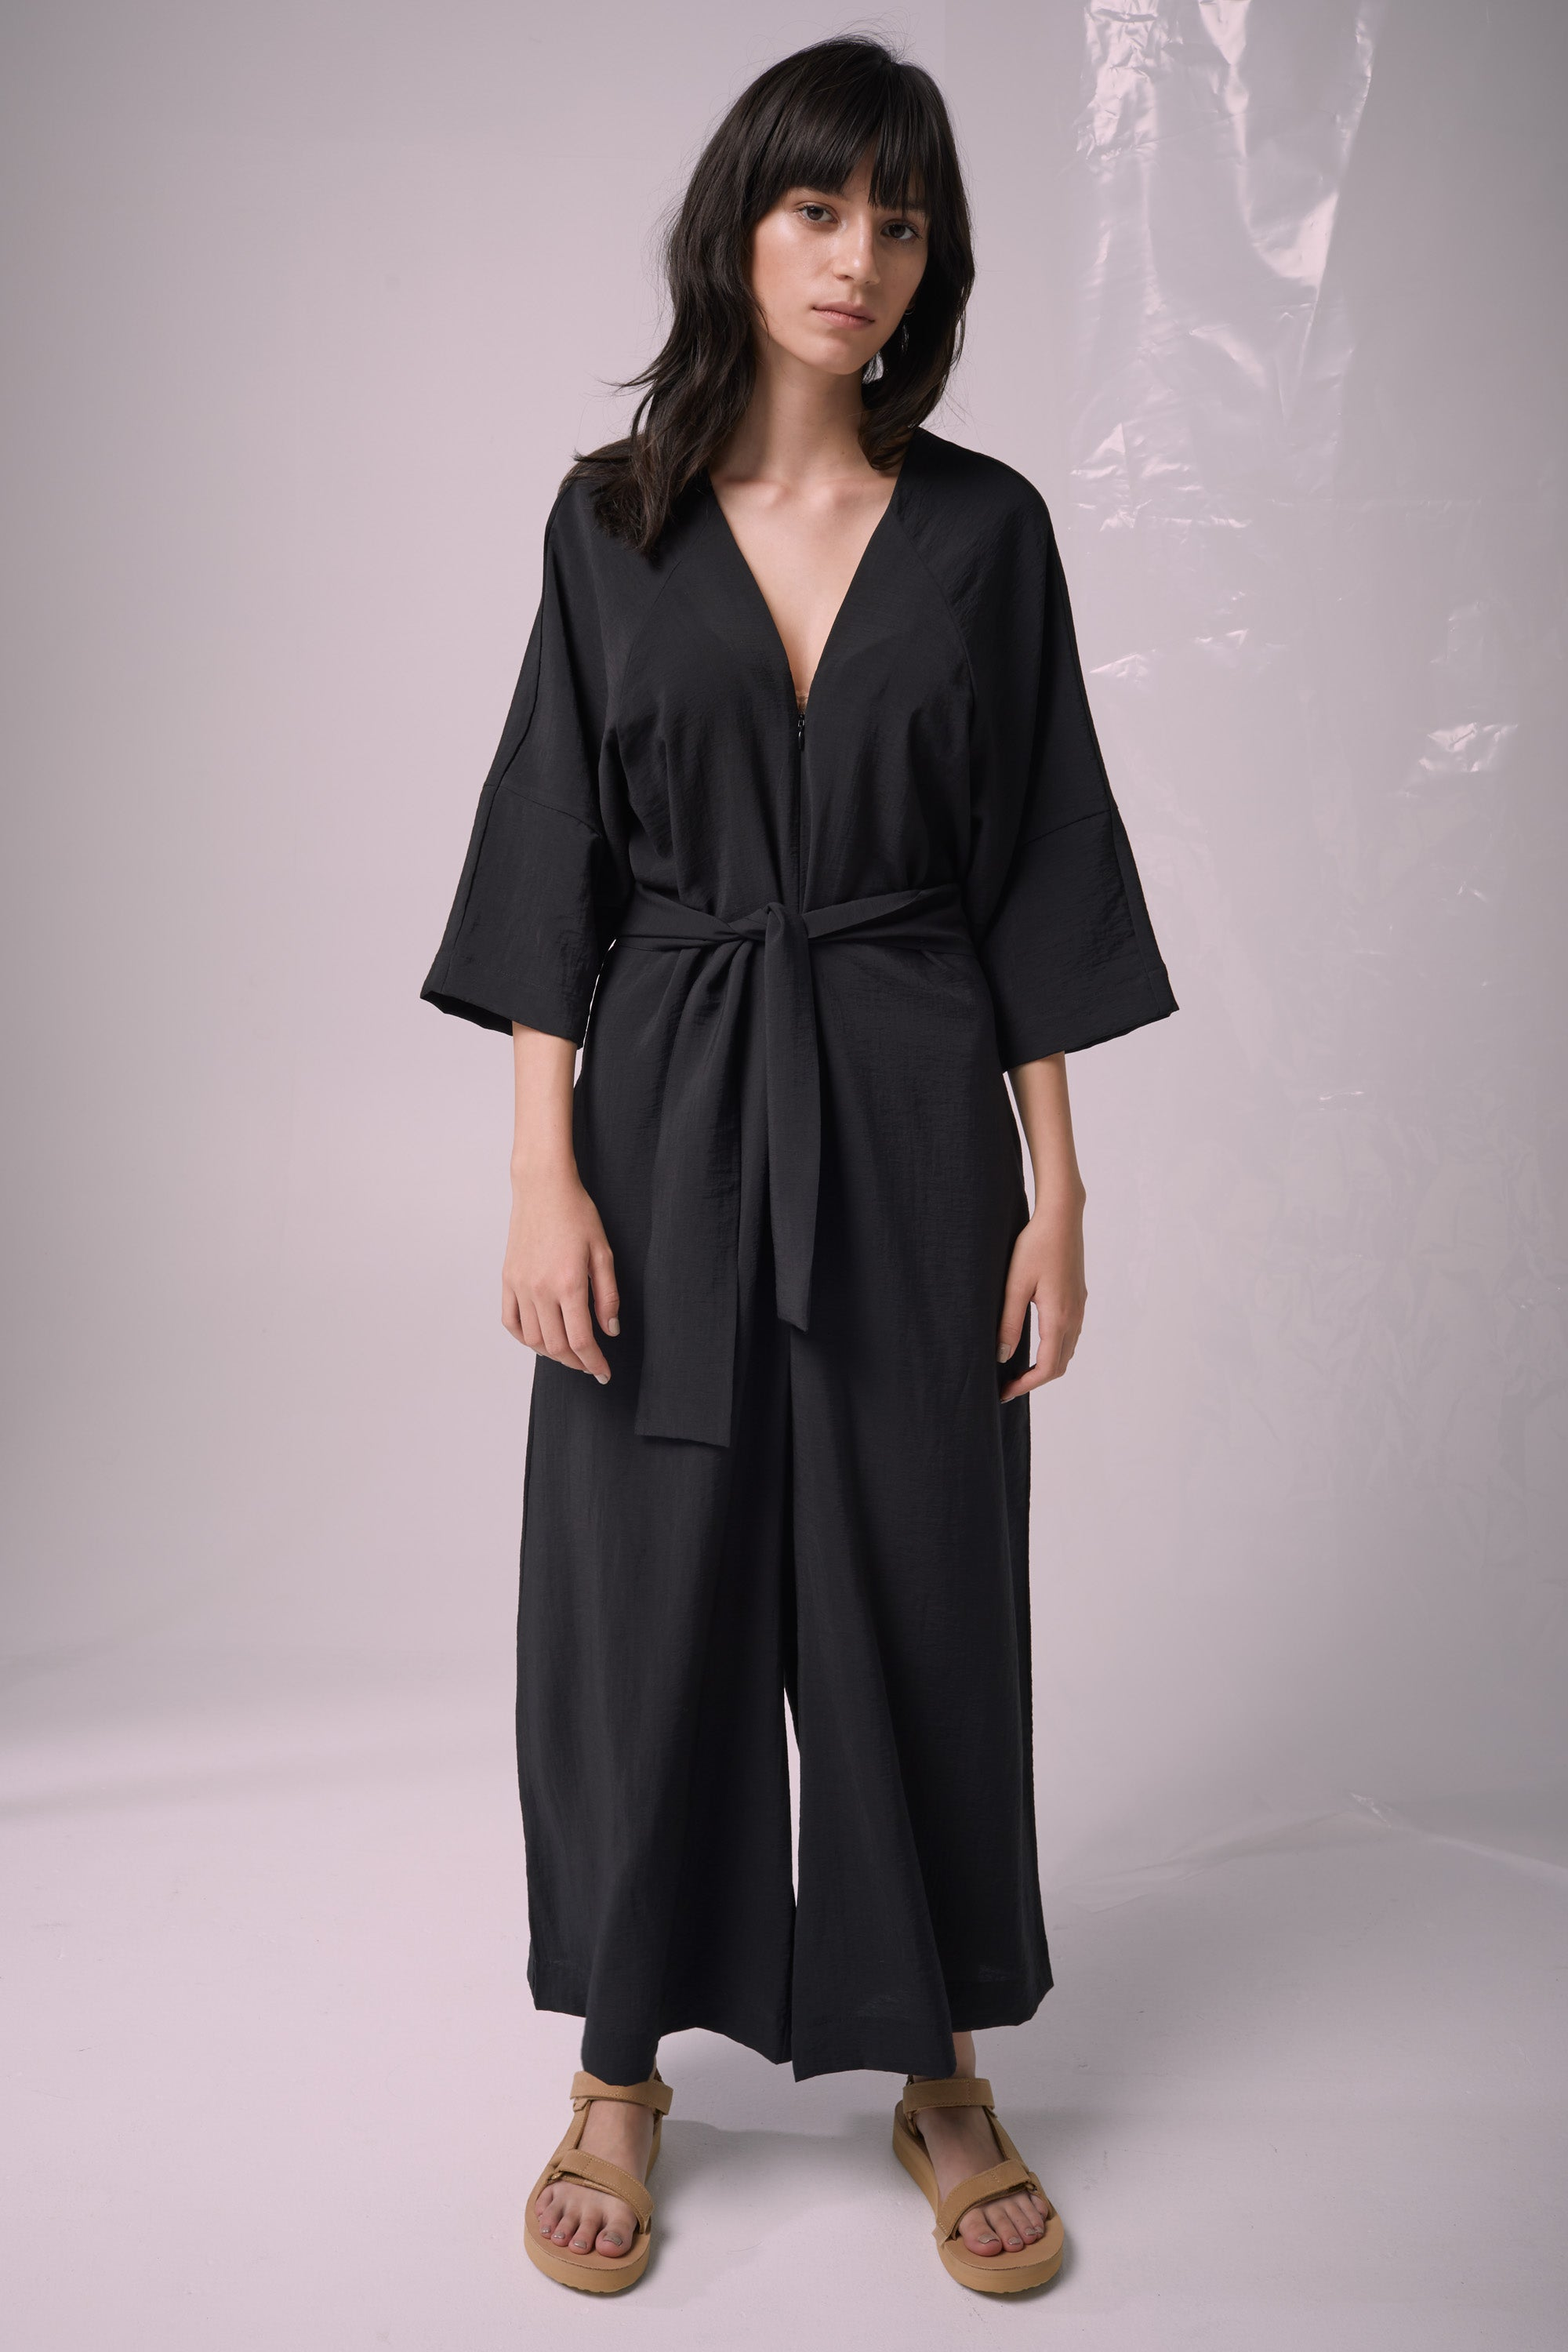 Ricochet NZ Fashion Designer Clothing Boutique SS19  Made in NZ Shell Shock Jumpsuit Black